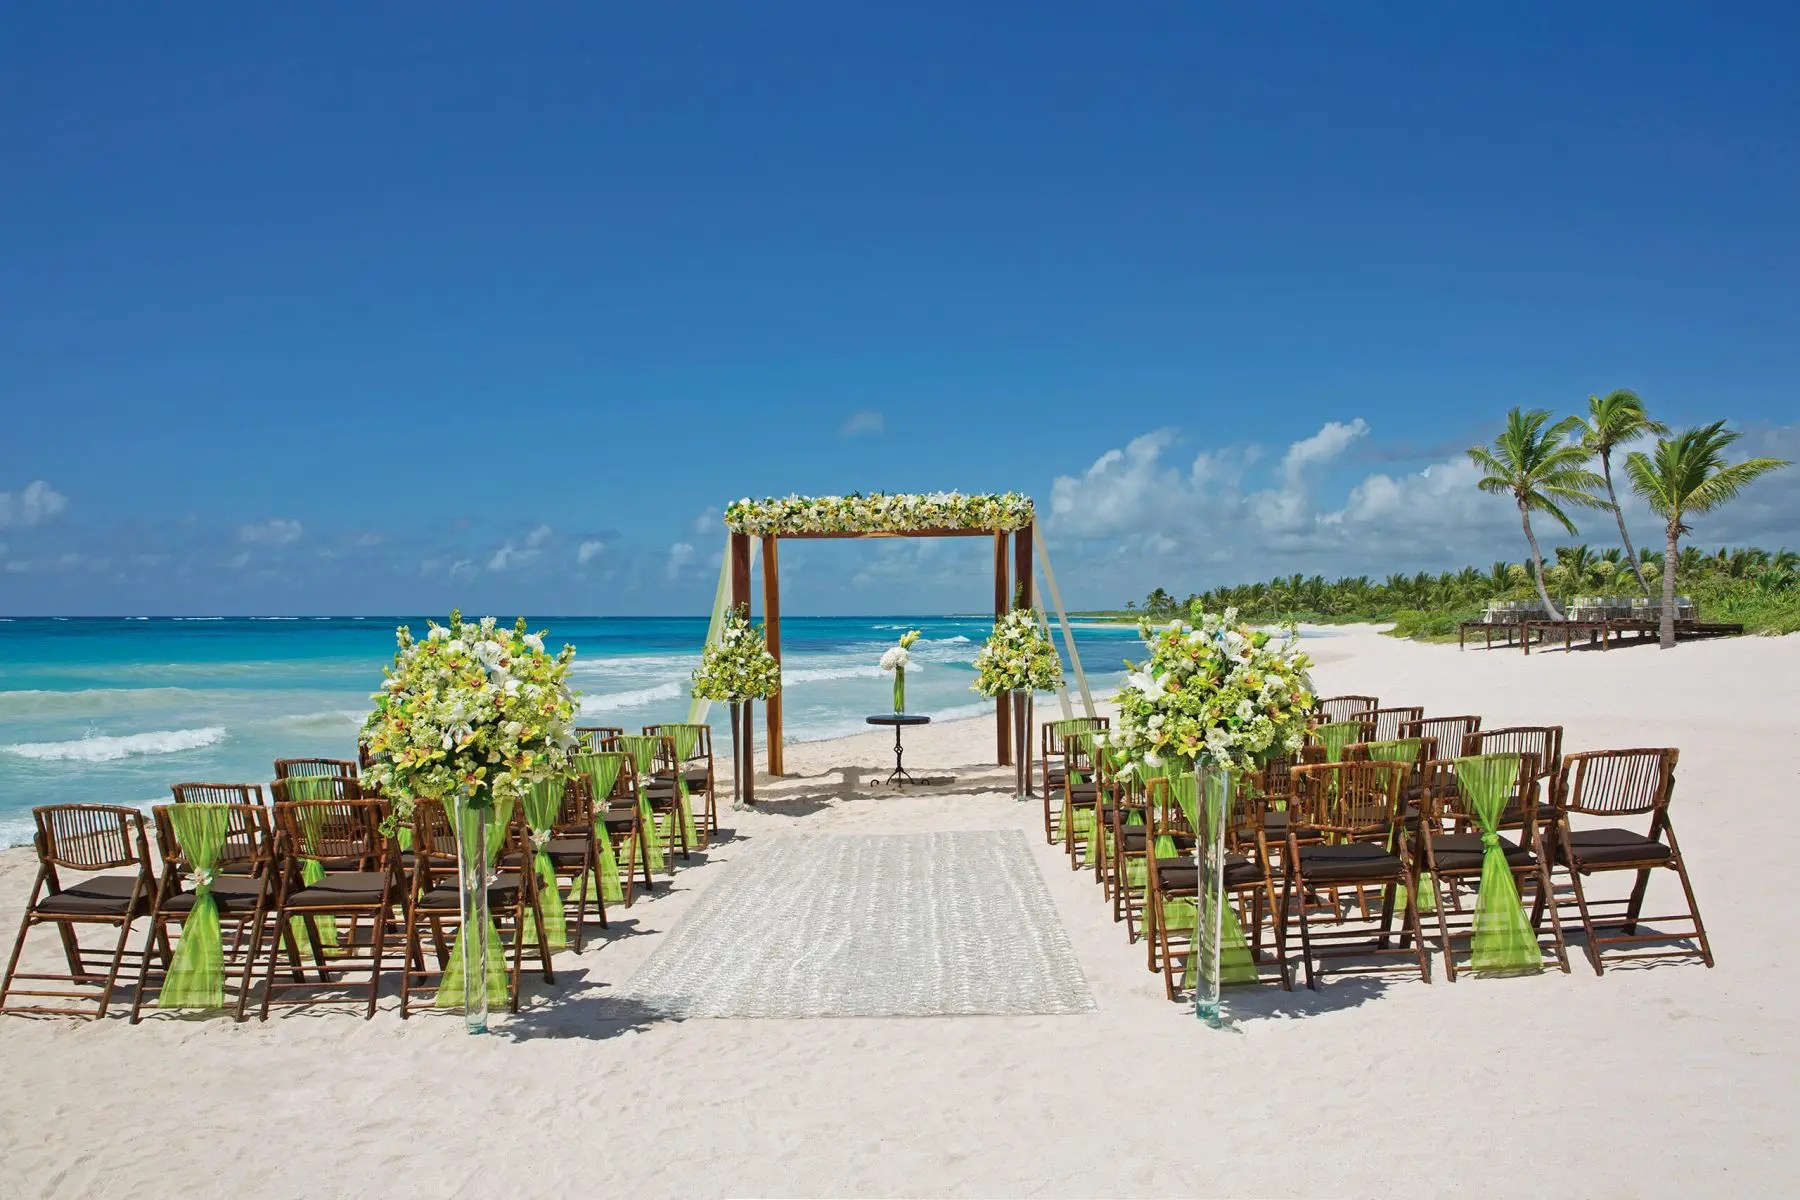 Wedding ceremony set up at the dream riviera tulum hotel and resort